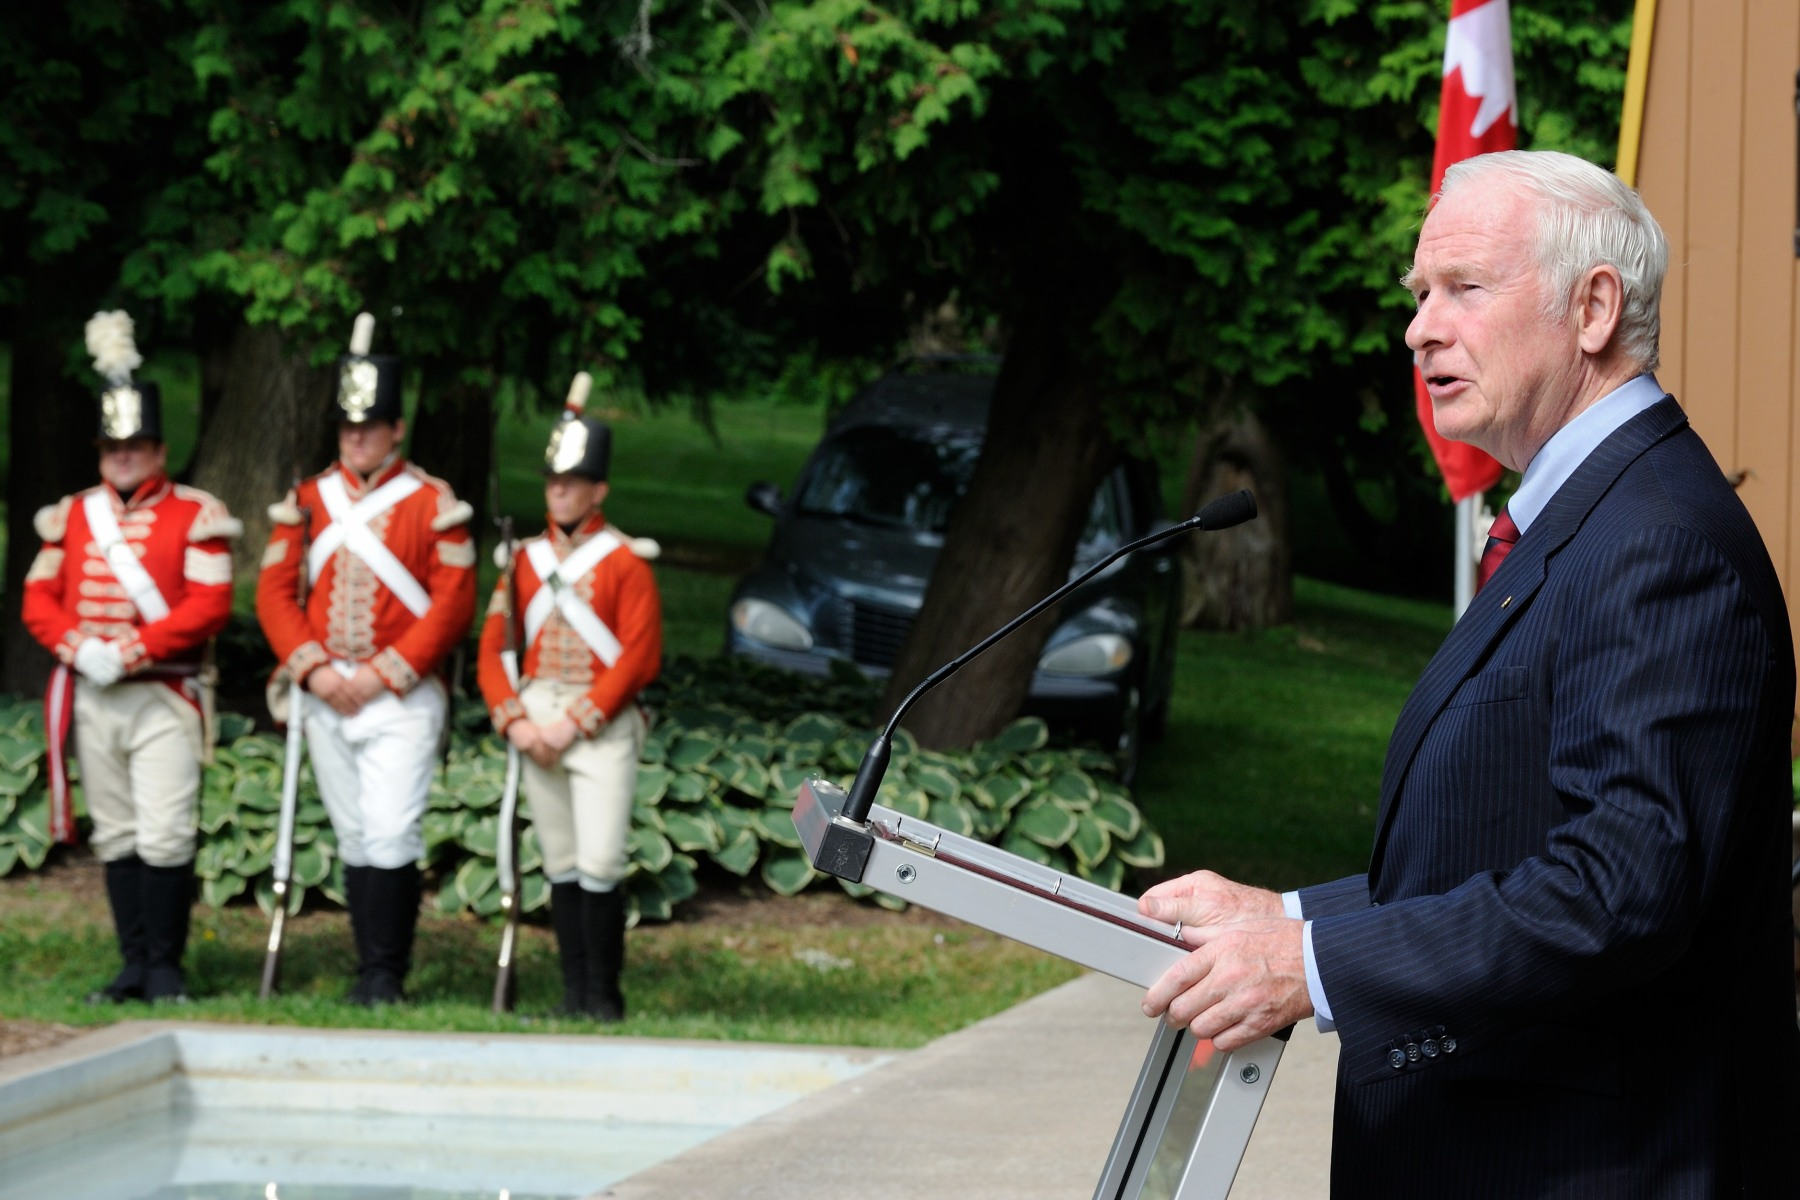 His Excellency attended the opening ceremonies hosted by the Niagara 1812 Legacy Council. The ceremony launched over 1 000 days of commemorations across the region. As commander-in-chief of Canada, His Excellency inspected a guard of honour and delivered a speech.